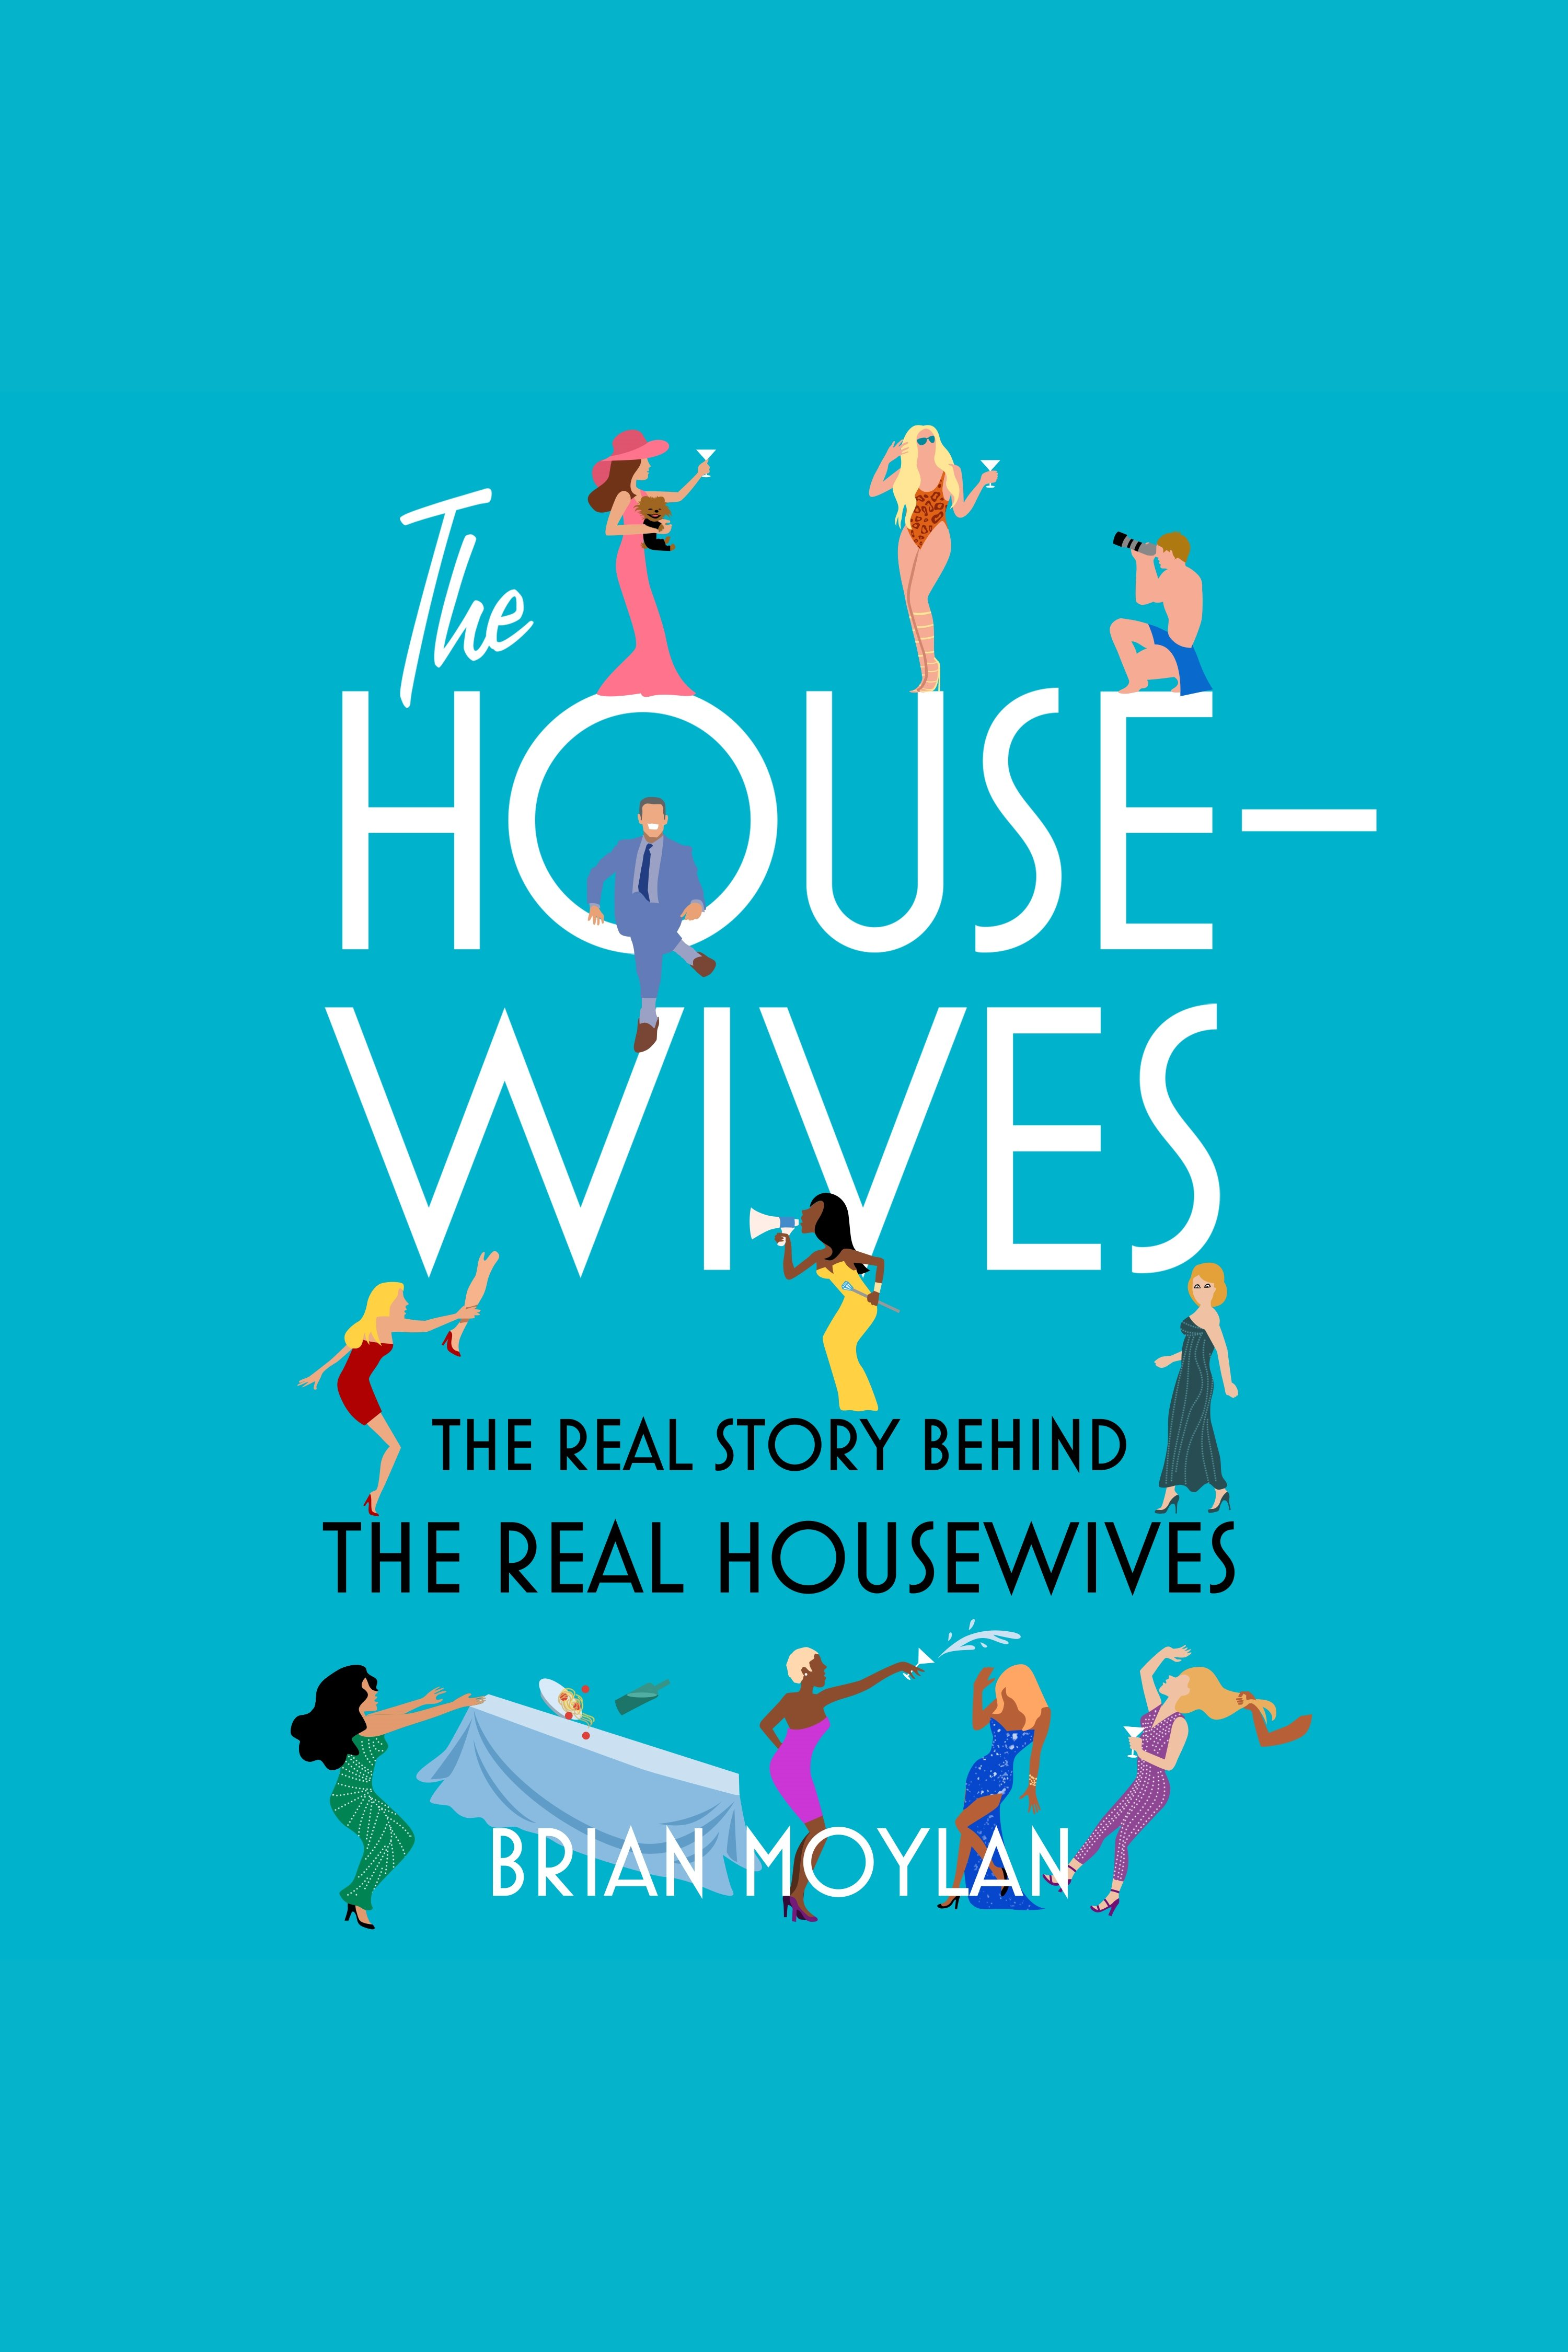 Housewives, The The Real Story Behind the Real Housewives